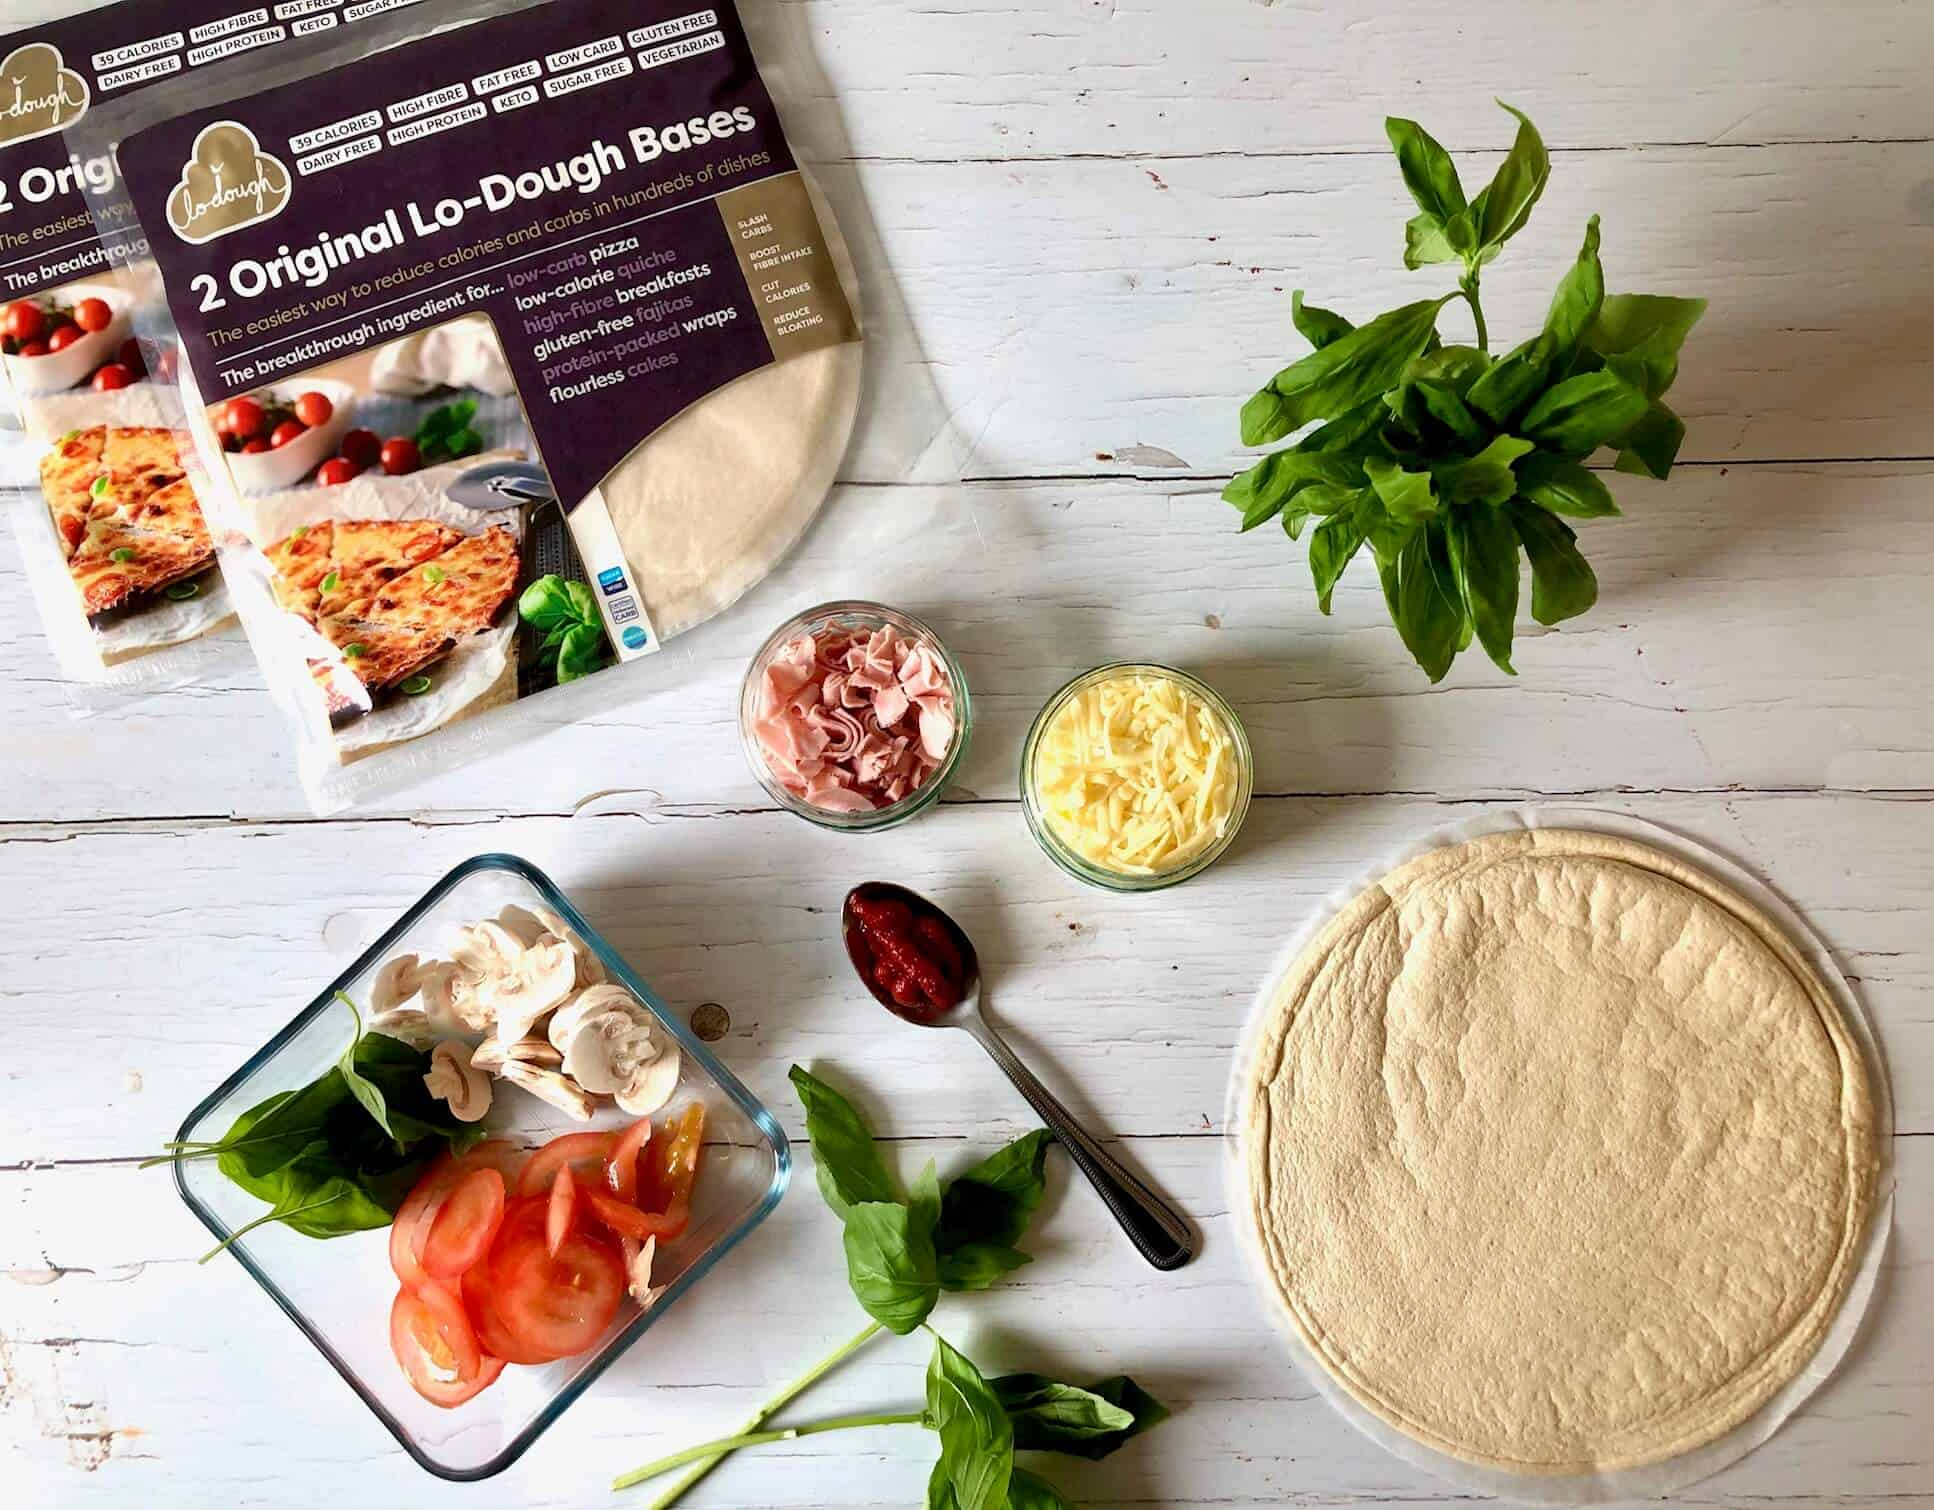 Original Lo-Dough bases - ingredients for making a pizza with Lo-Dough